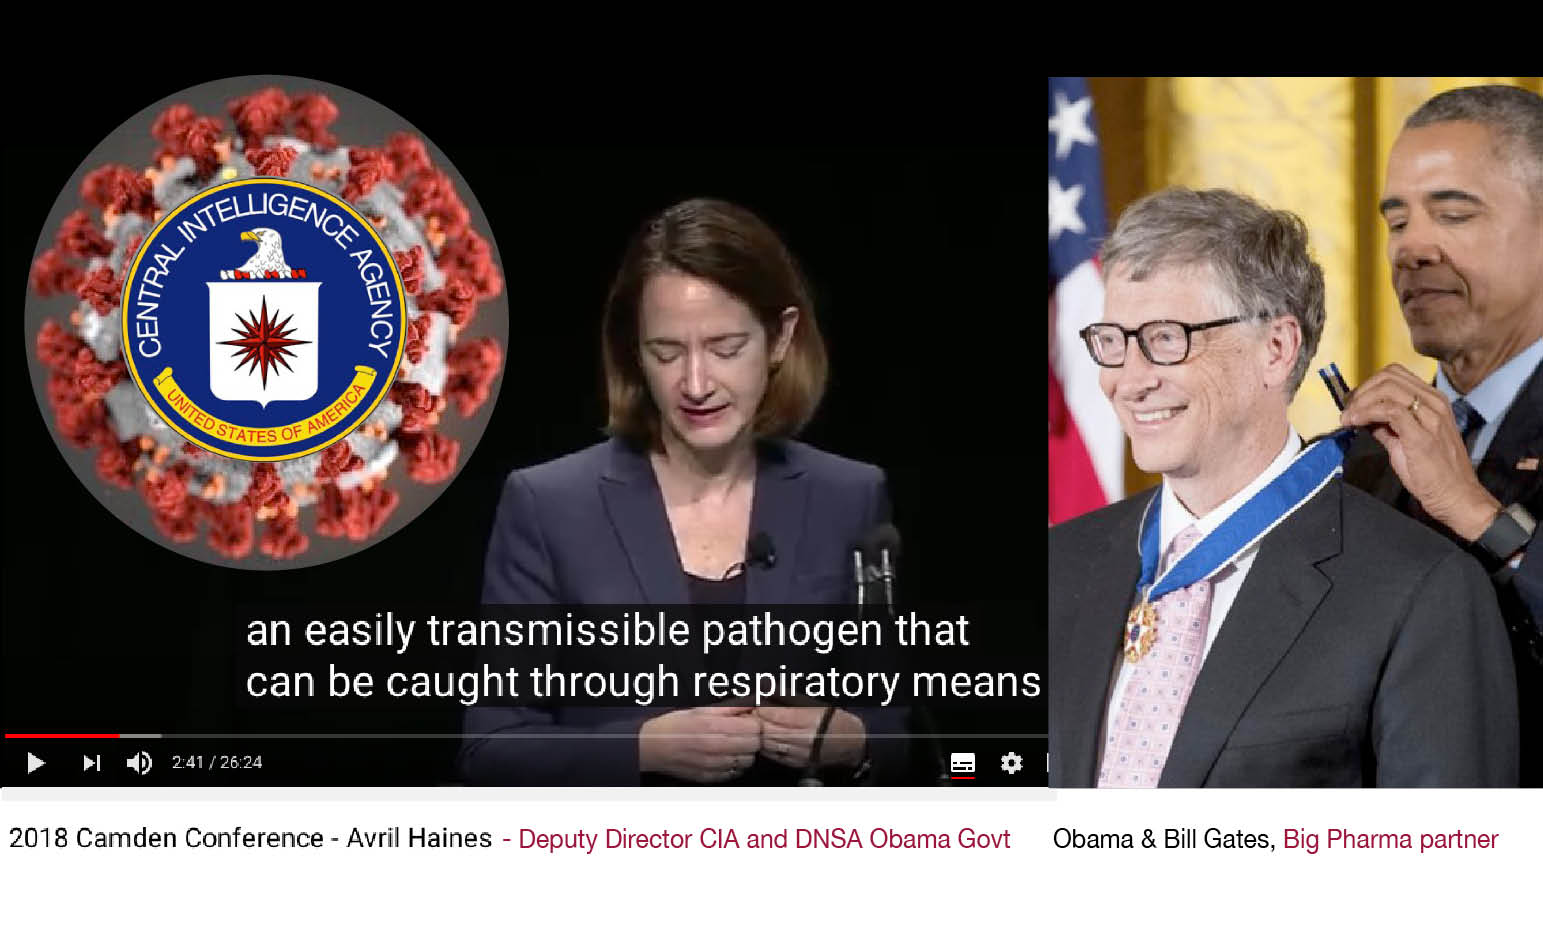 CoronaVirus BioWeapon – 6. Prophecy on Pandemic and NWO by Obama-Biden CIA's Queen